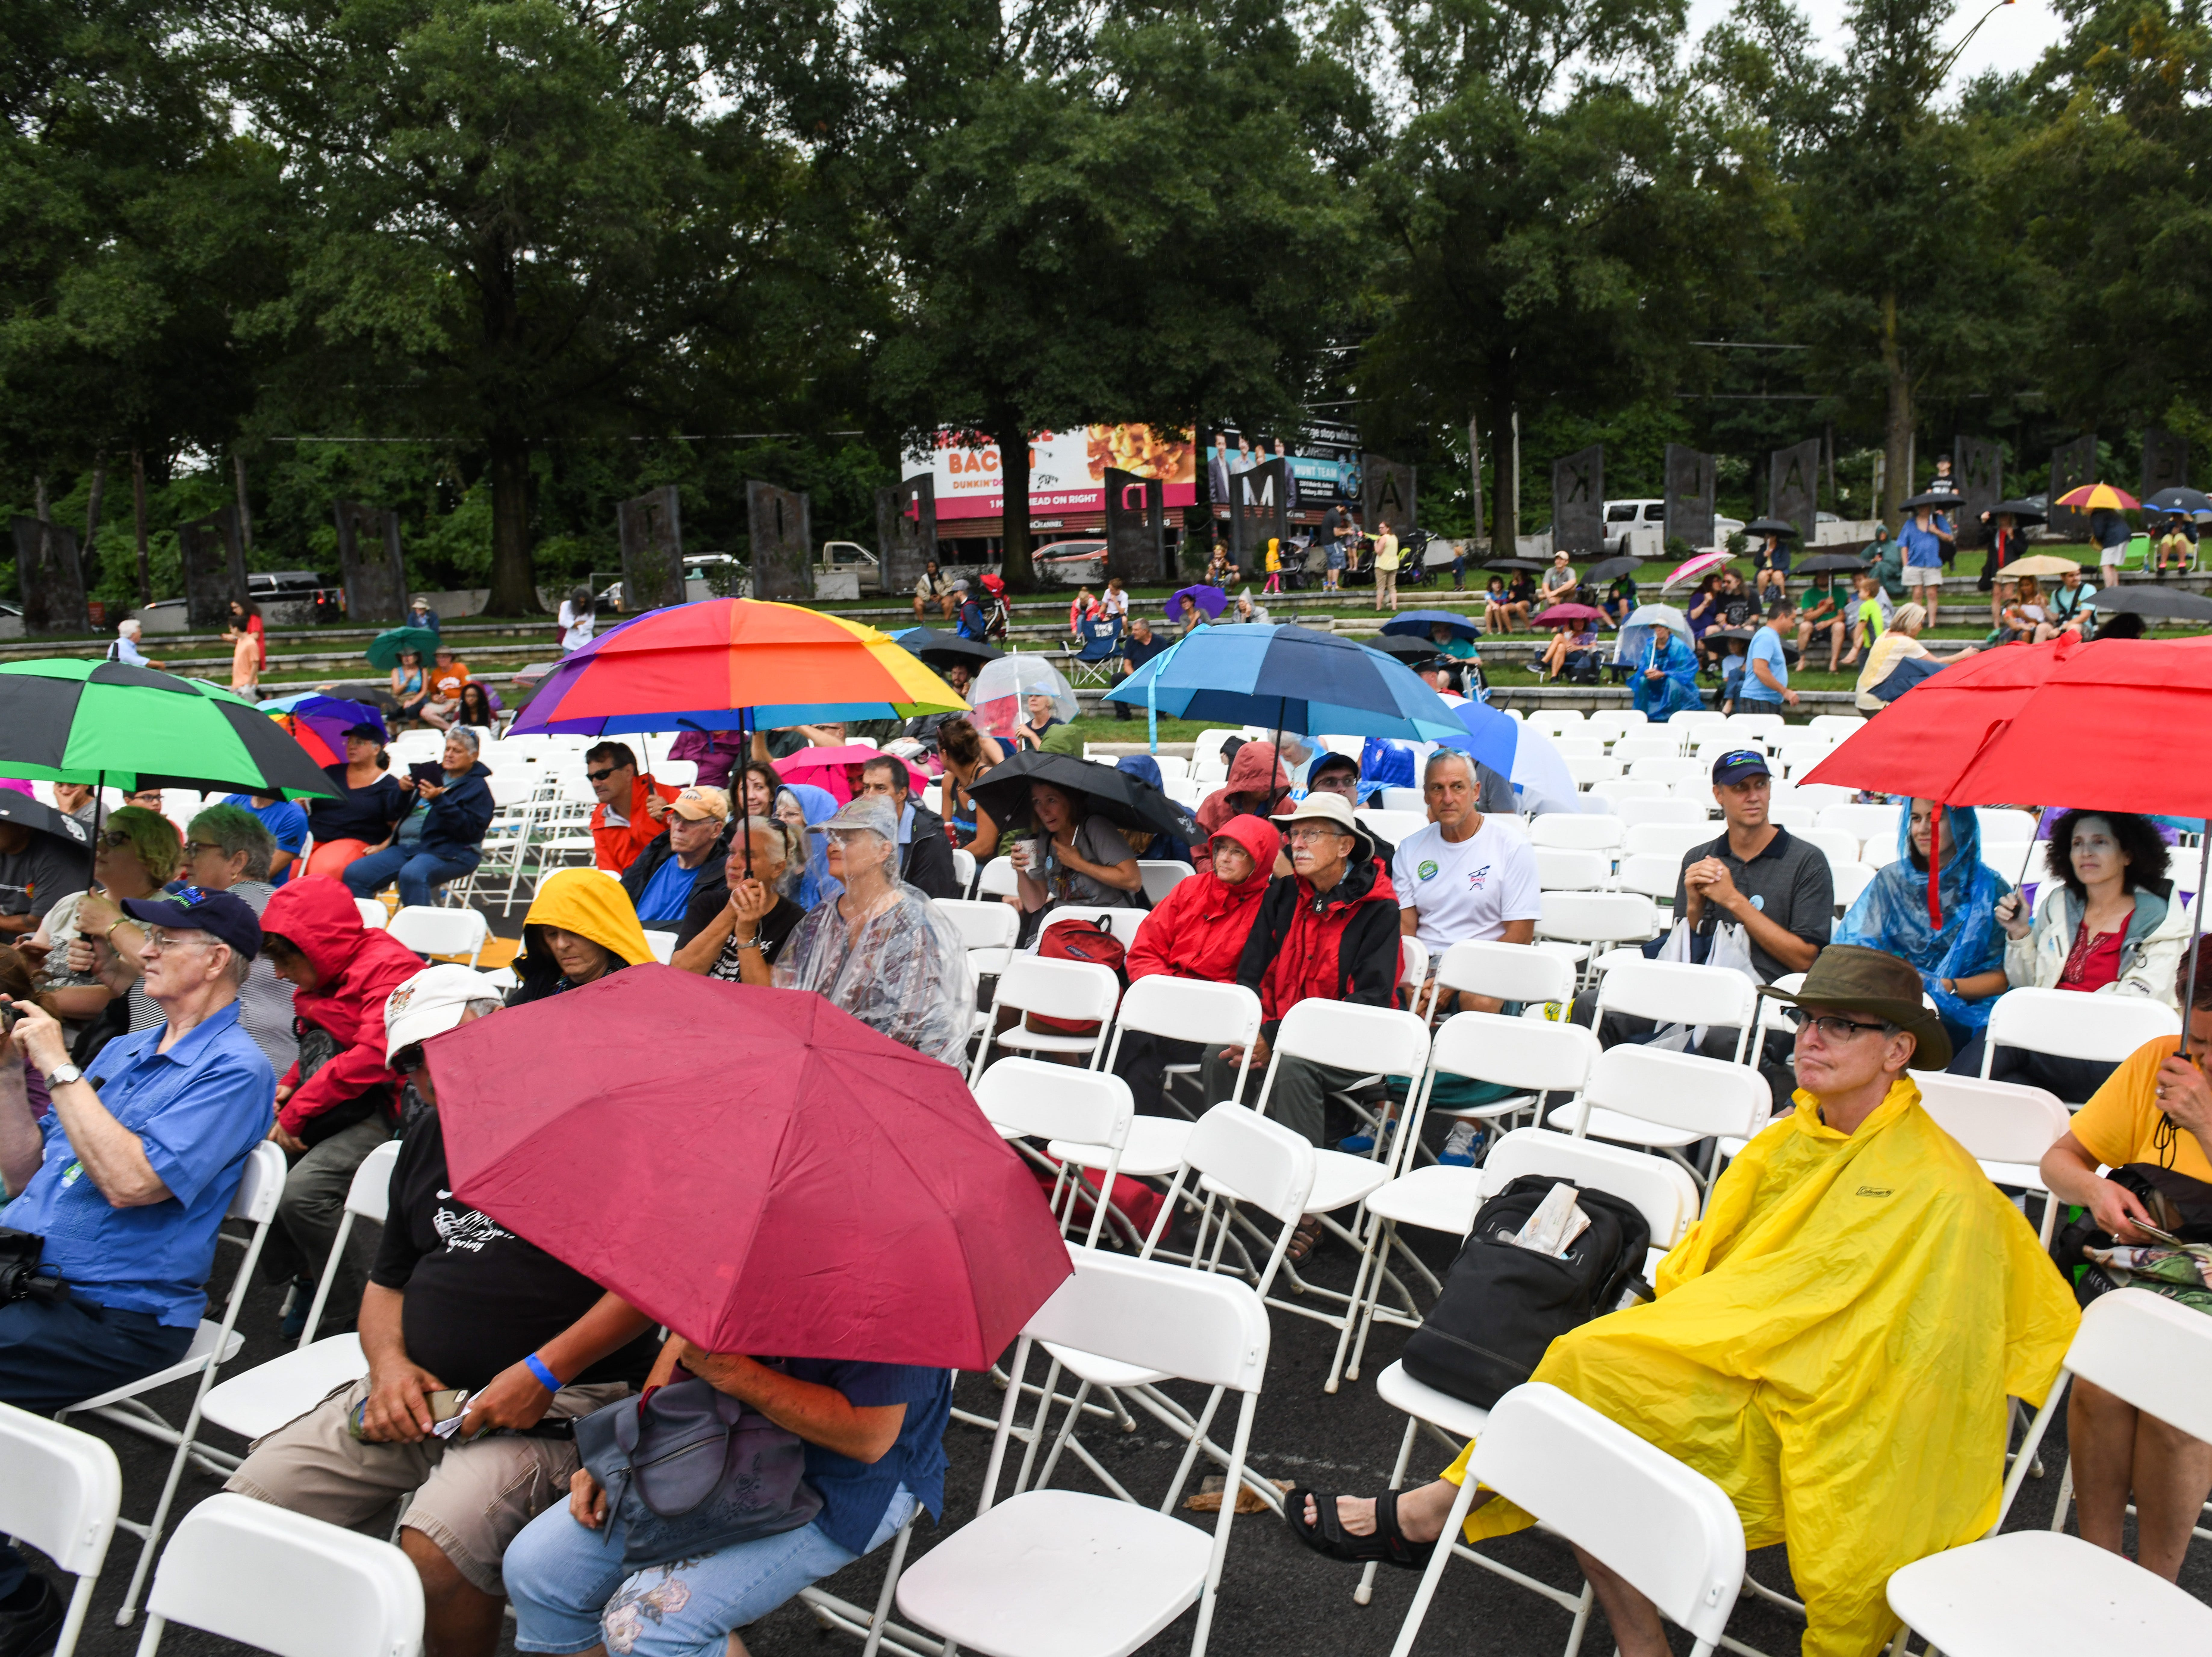 A crowd gathers to watch the Chankas of Peru group at the National Folk Festival in Salisbury on Saturday, Sept. 8.